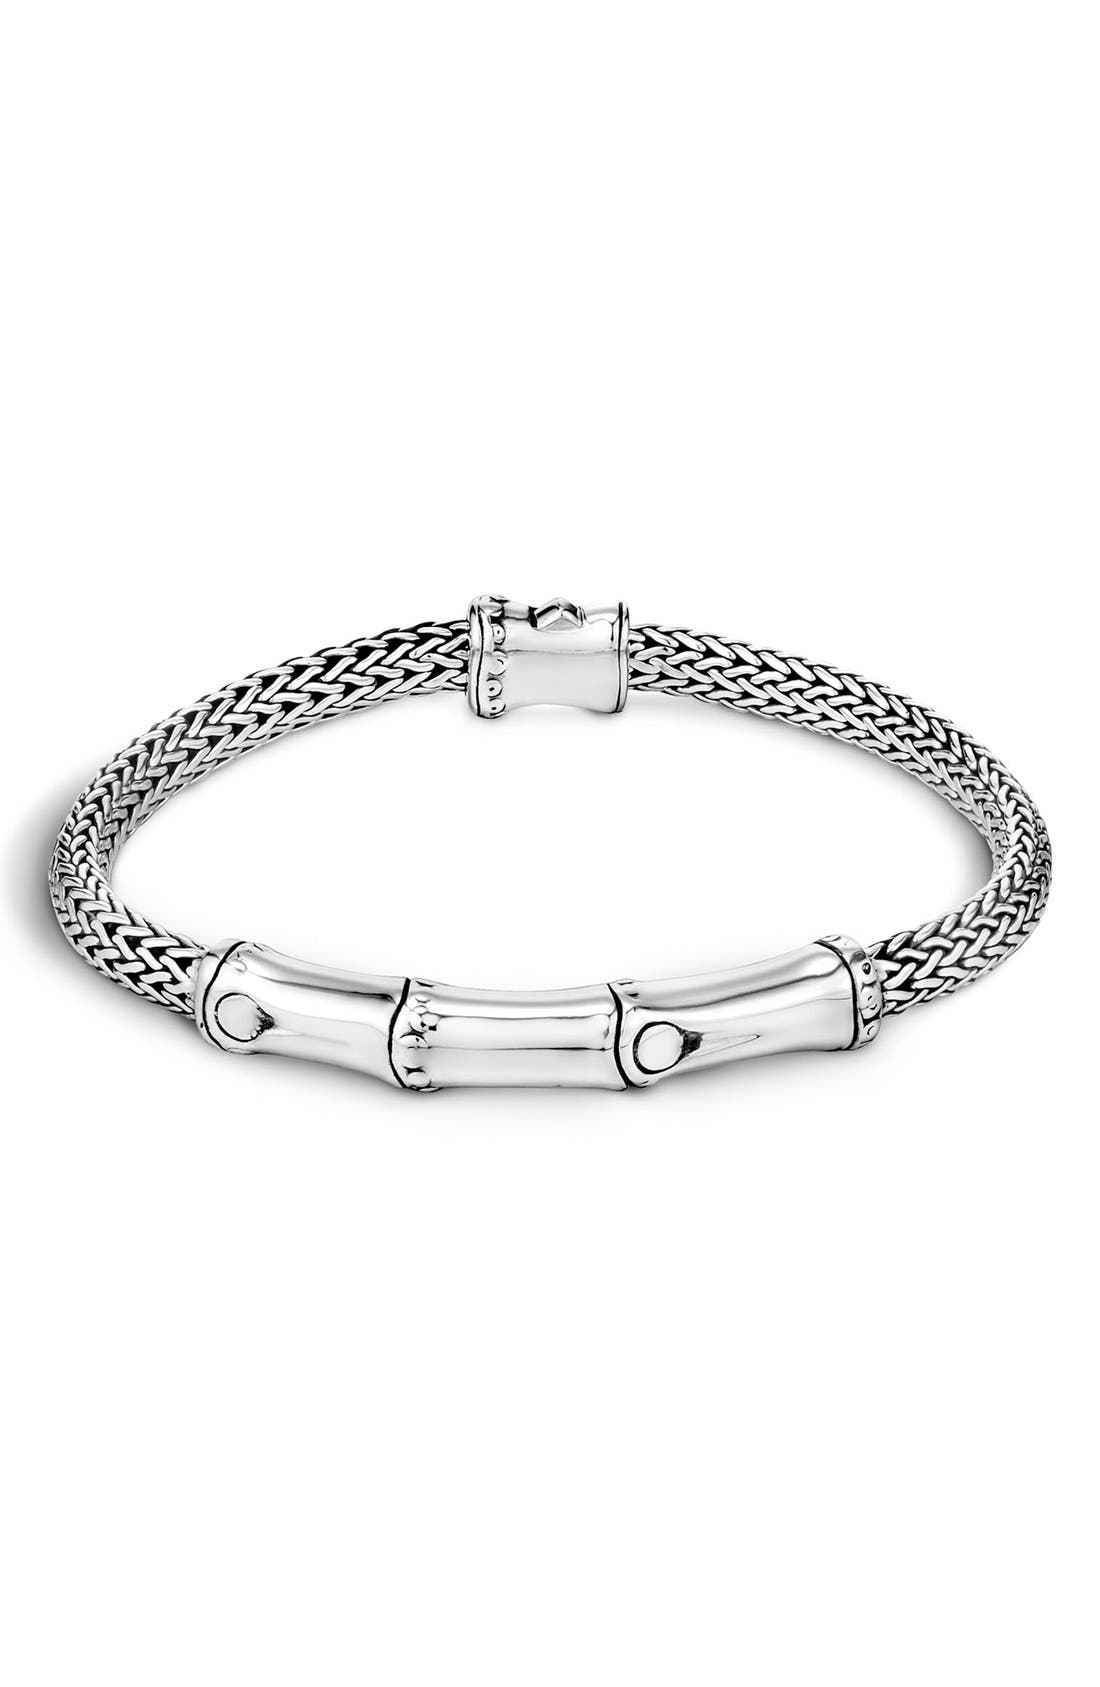 Bamboo 4mm Bracelet,                             Main thumbnail 1, color,                             Sterling Silver